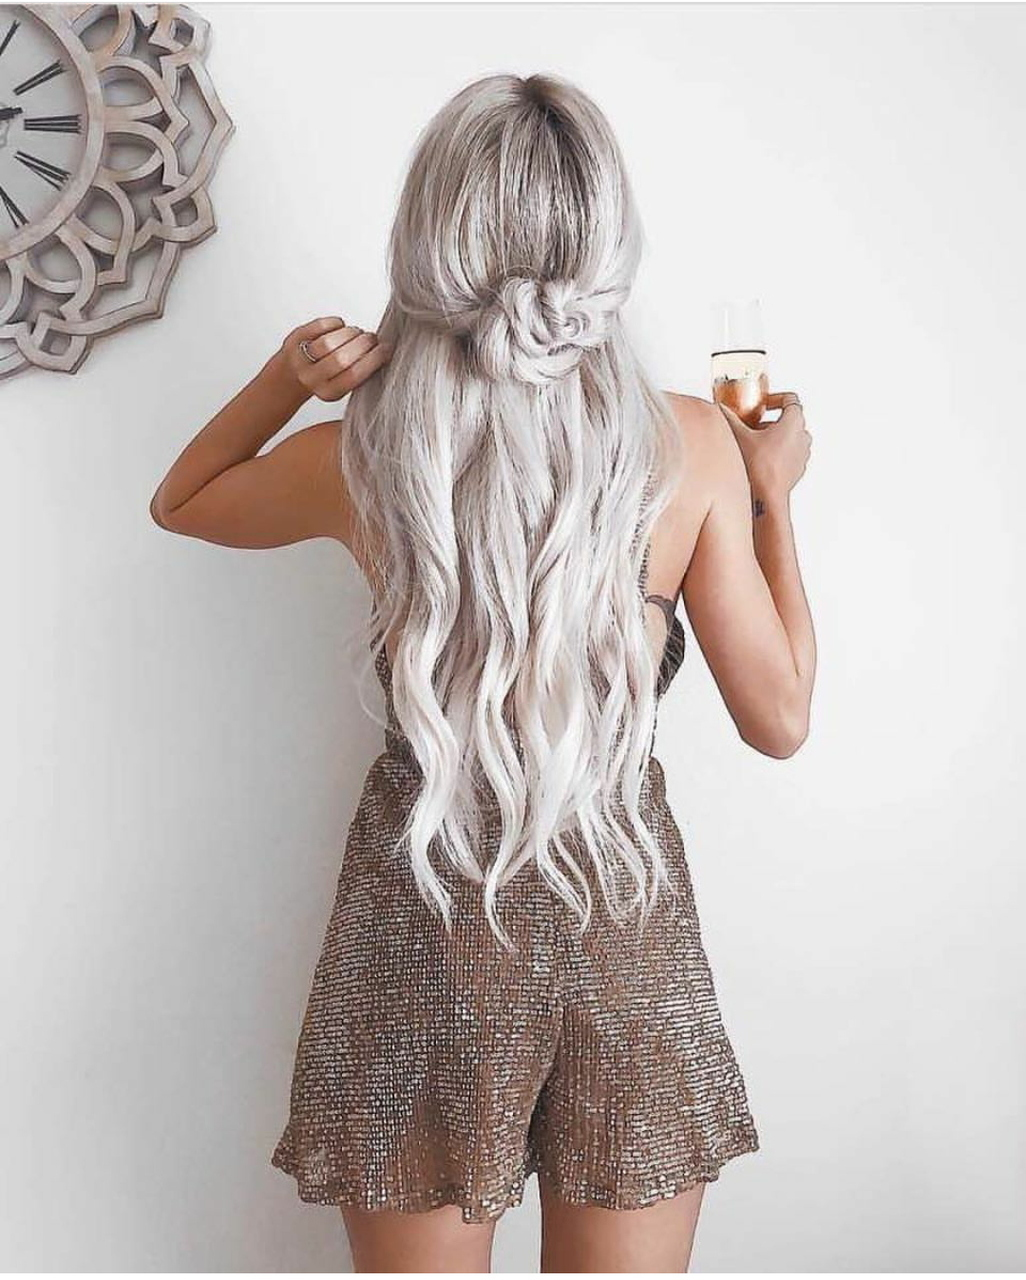 hair, fashion, and hairstyle image